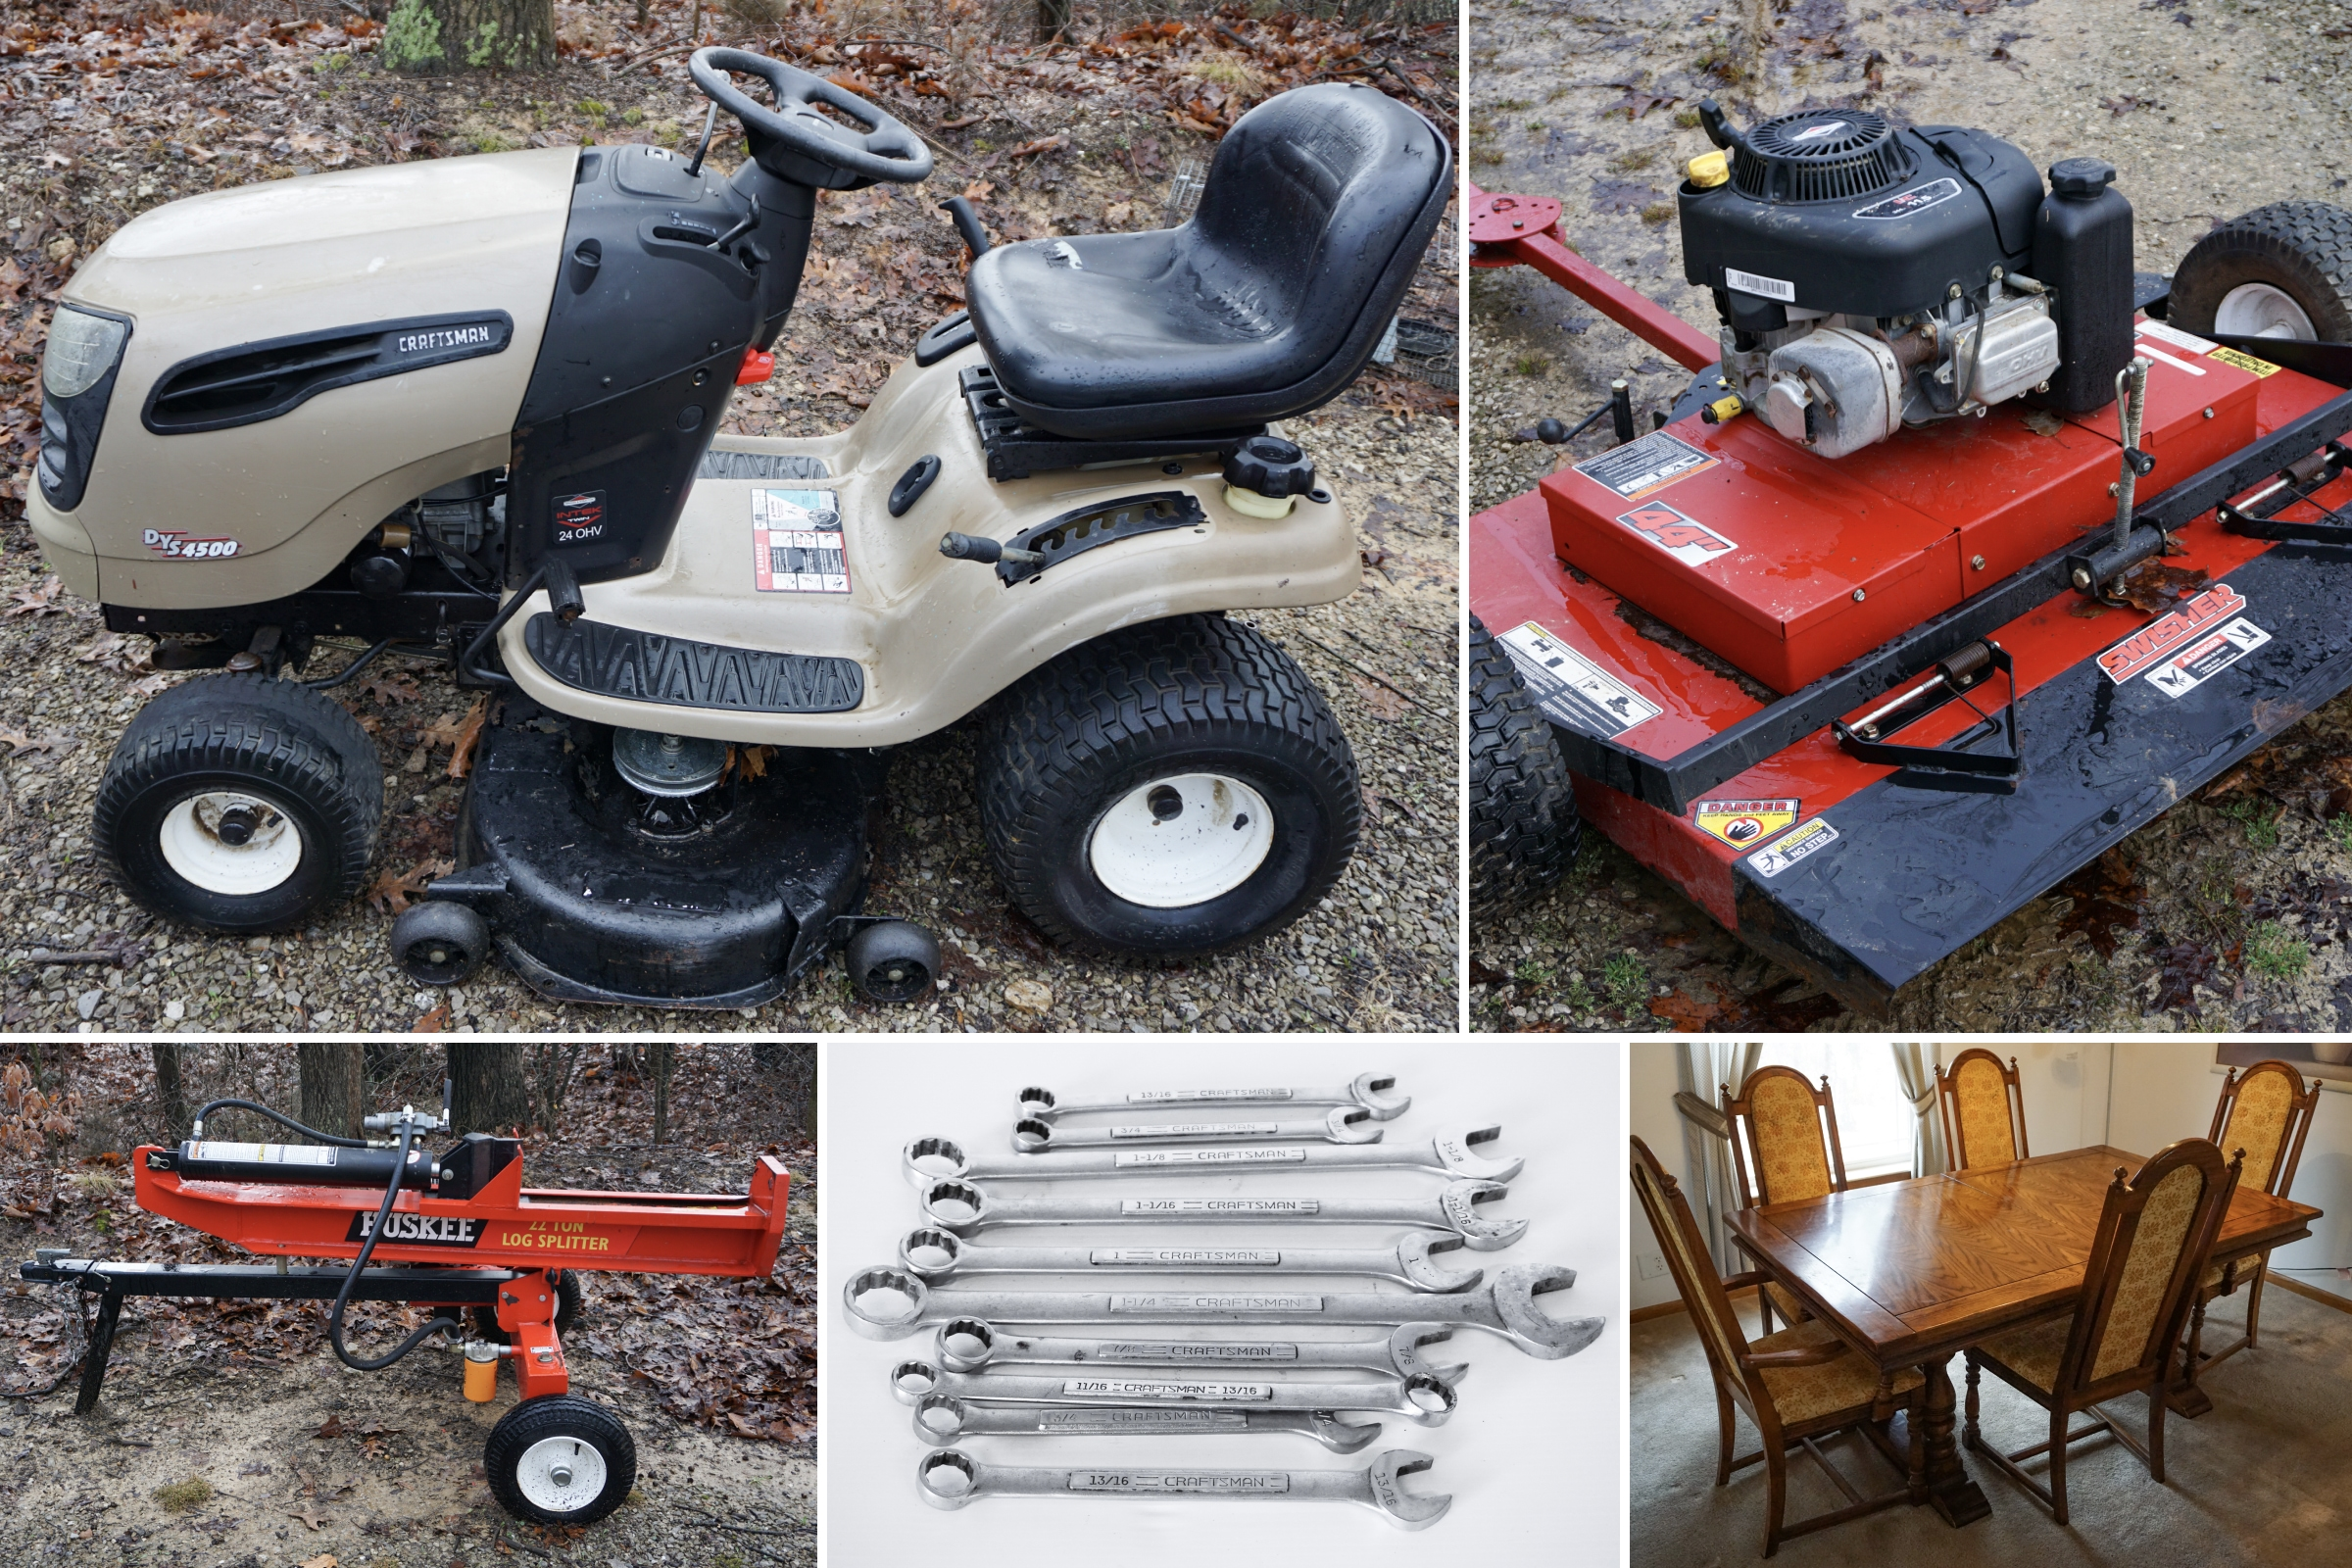 Thursby Personal Property Auction